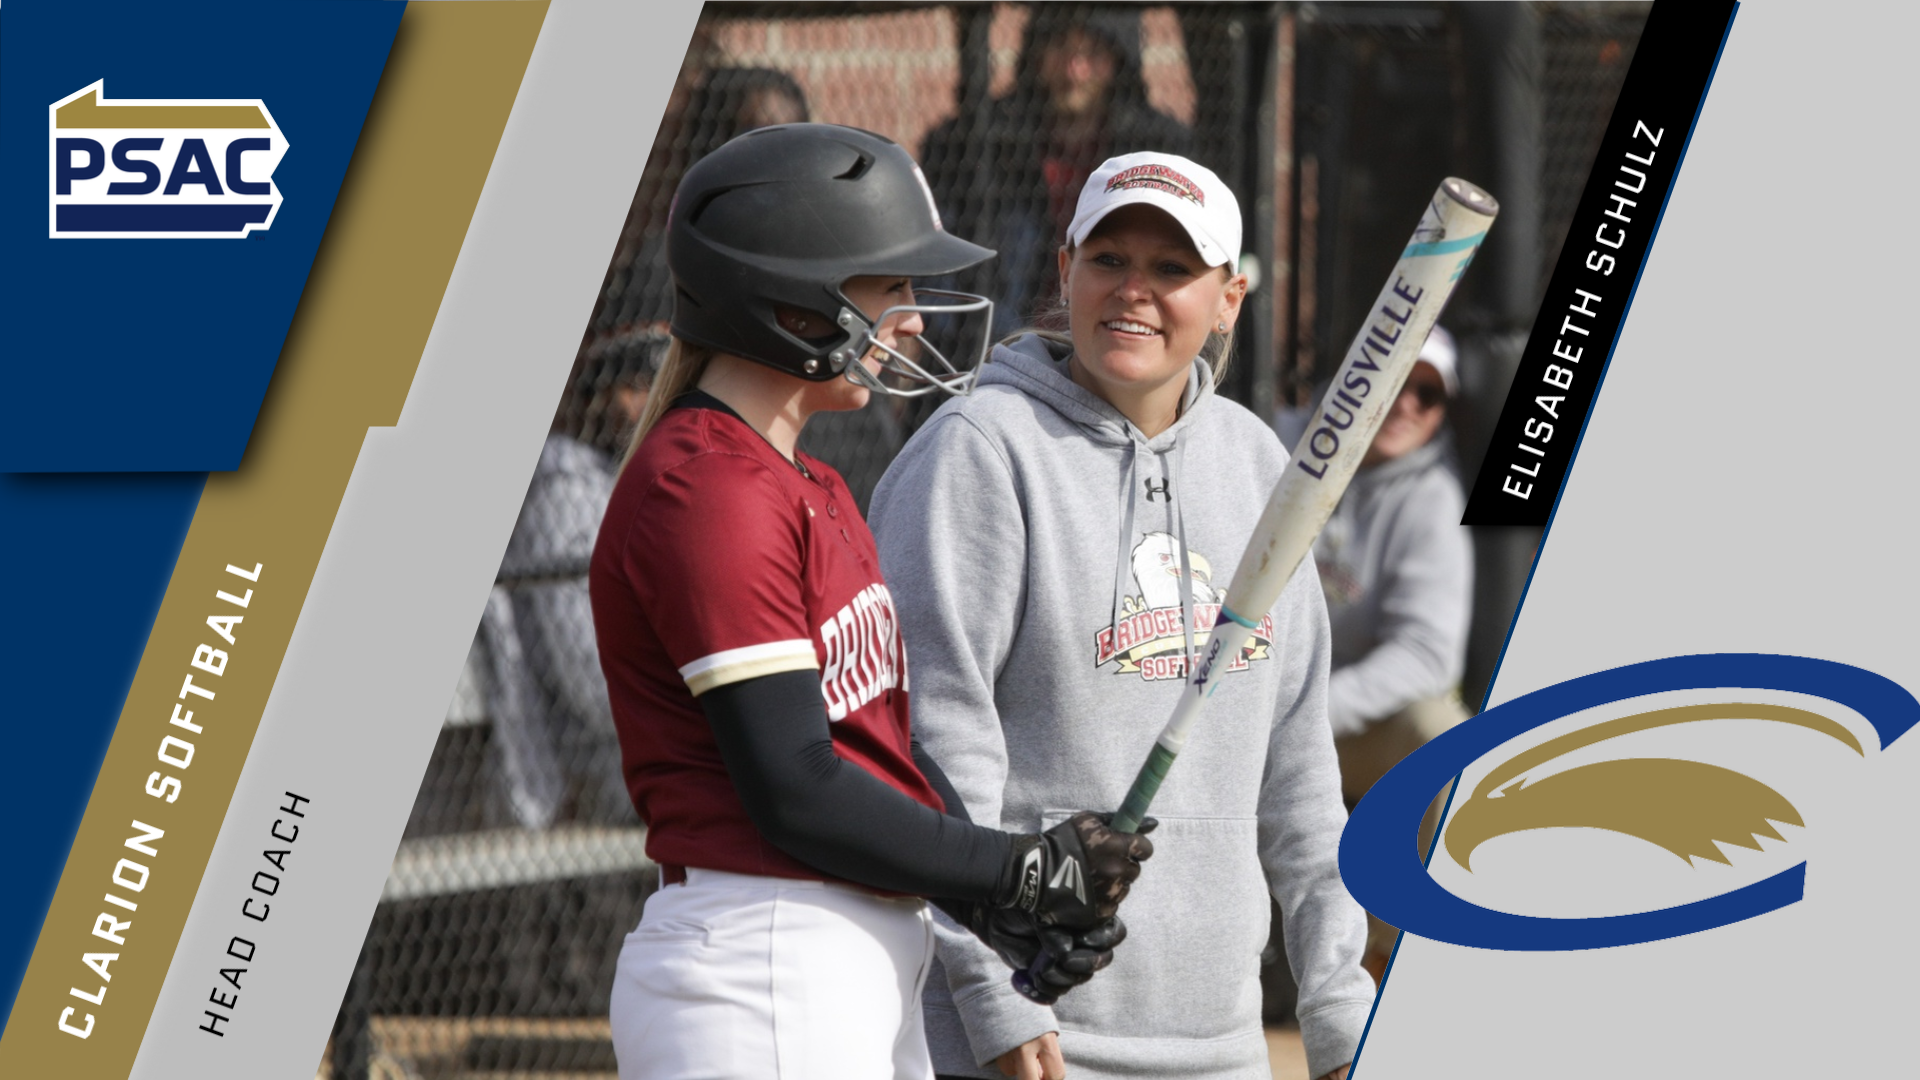 Beers, Garber and Myers Headline PSAC Softball All-Conference Teams